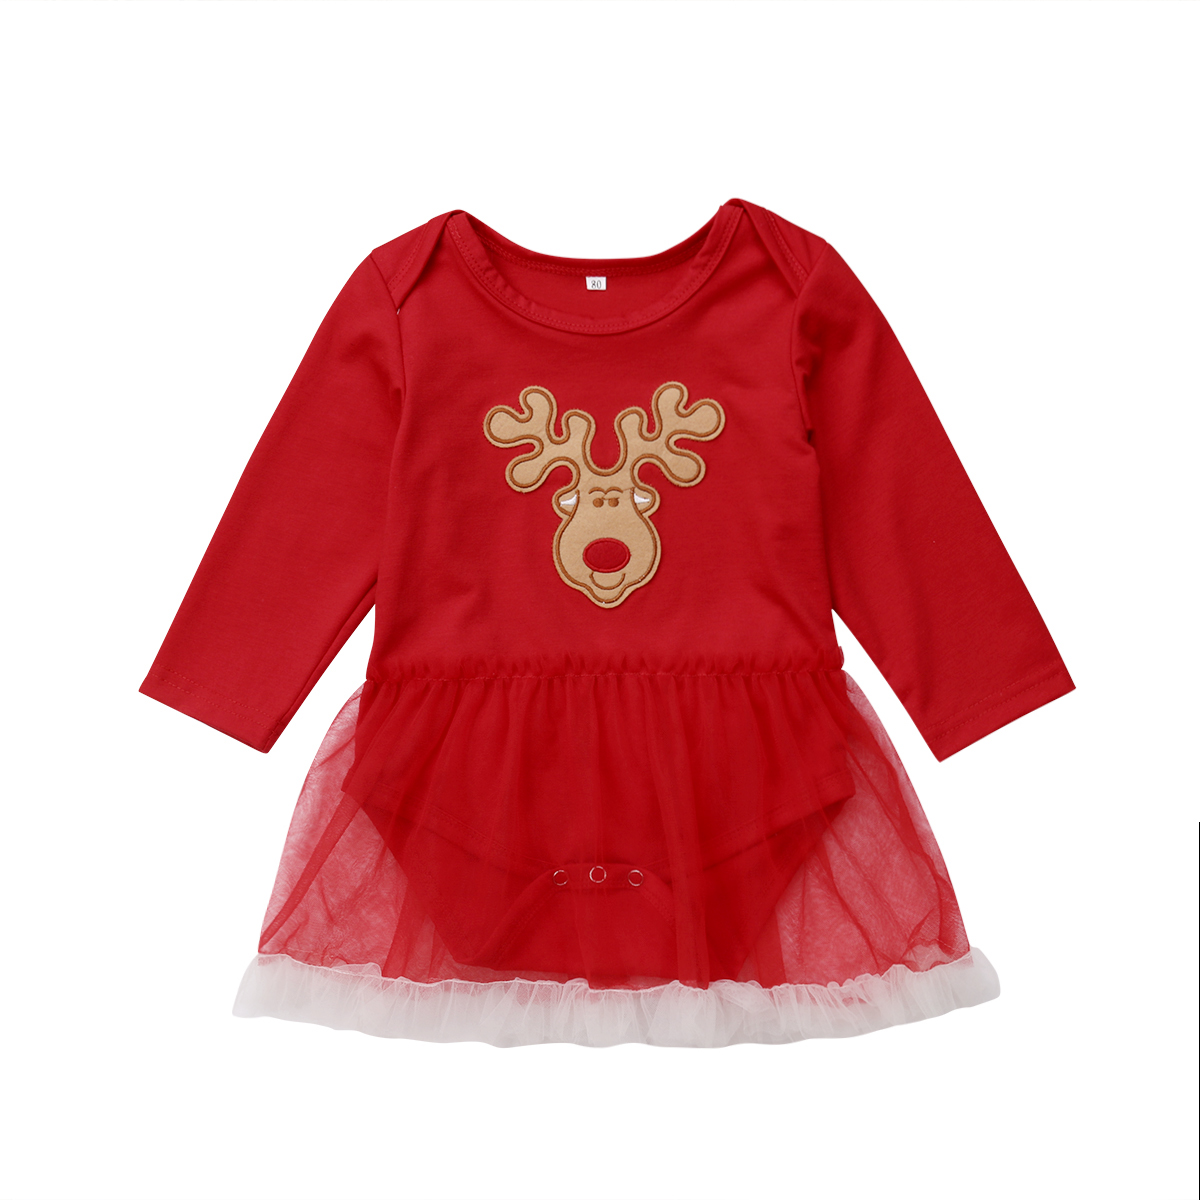 Newborn Cotton Baby Girl Christmas Red Lace   Romper   Jumpsuit Outfit Set Clothes